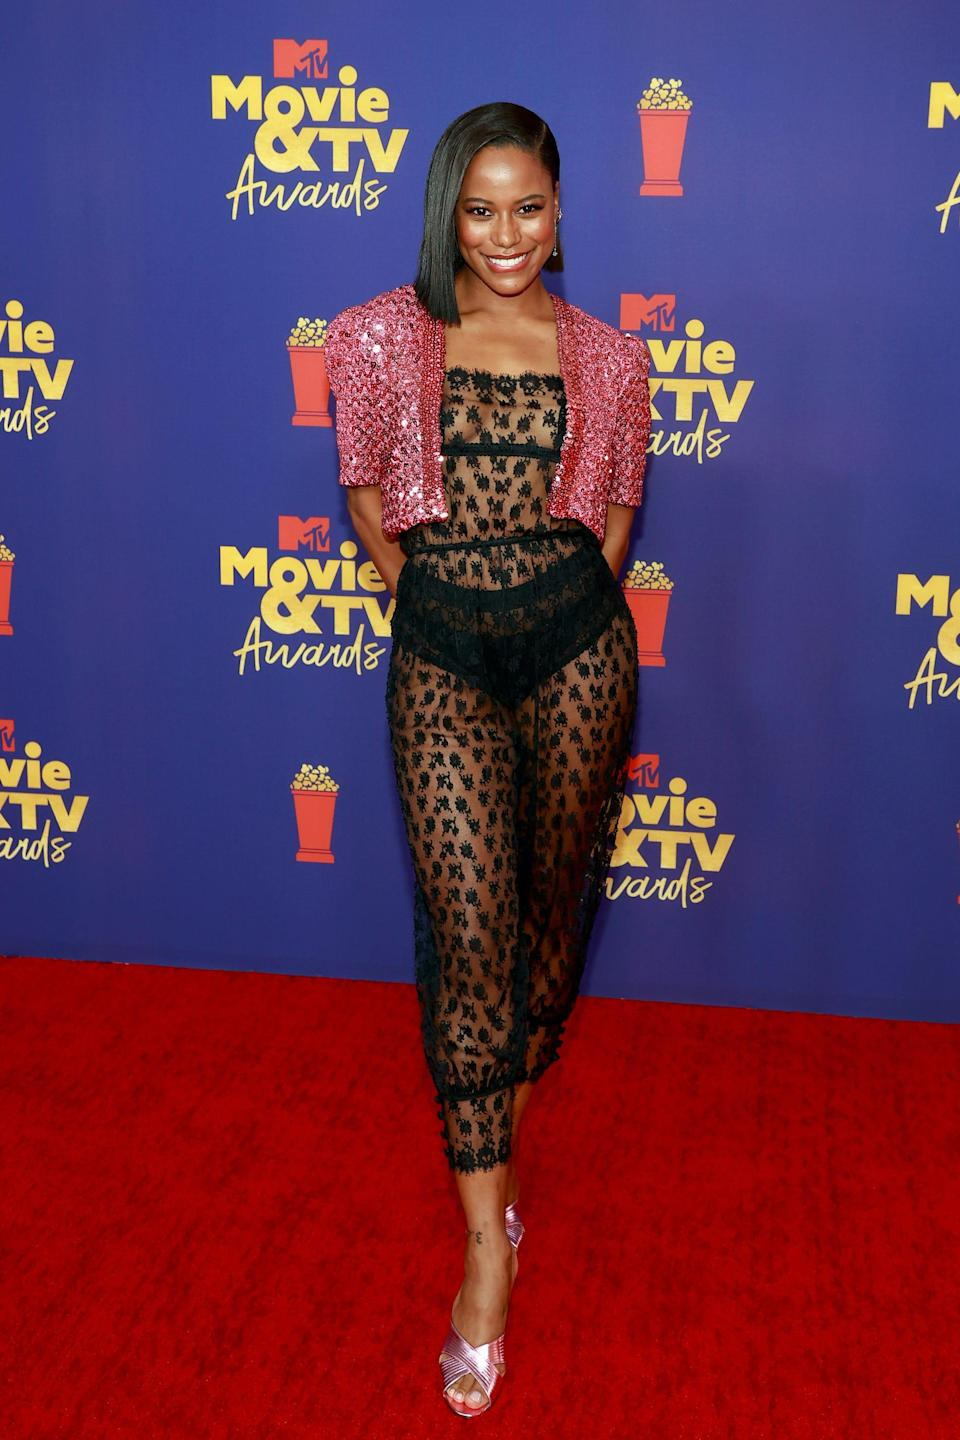 Taylour Paige attends the 2021 MTV Movie Awards on May 16